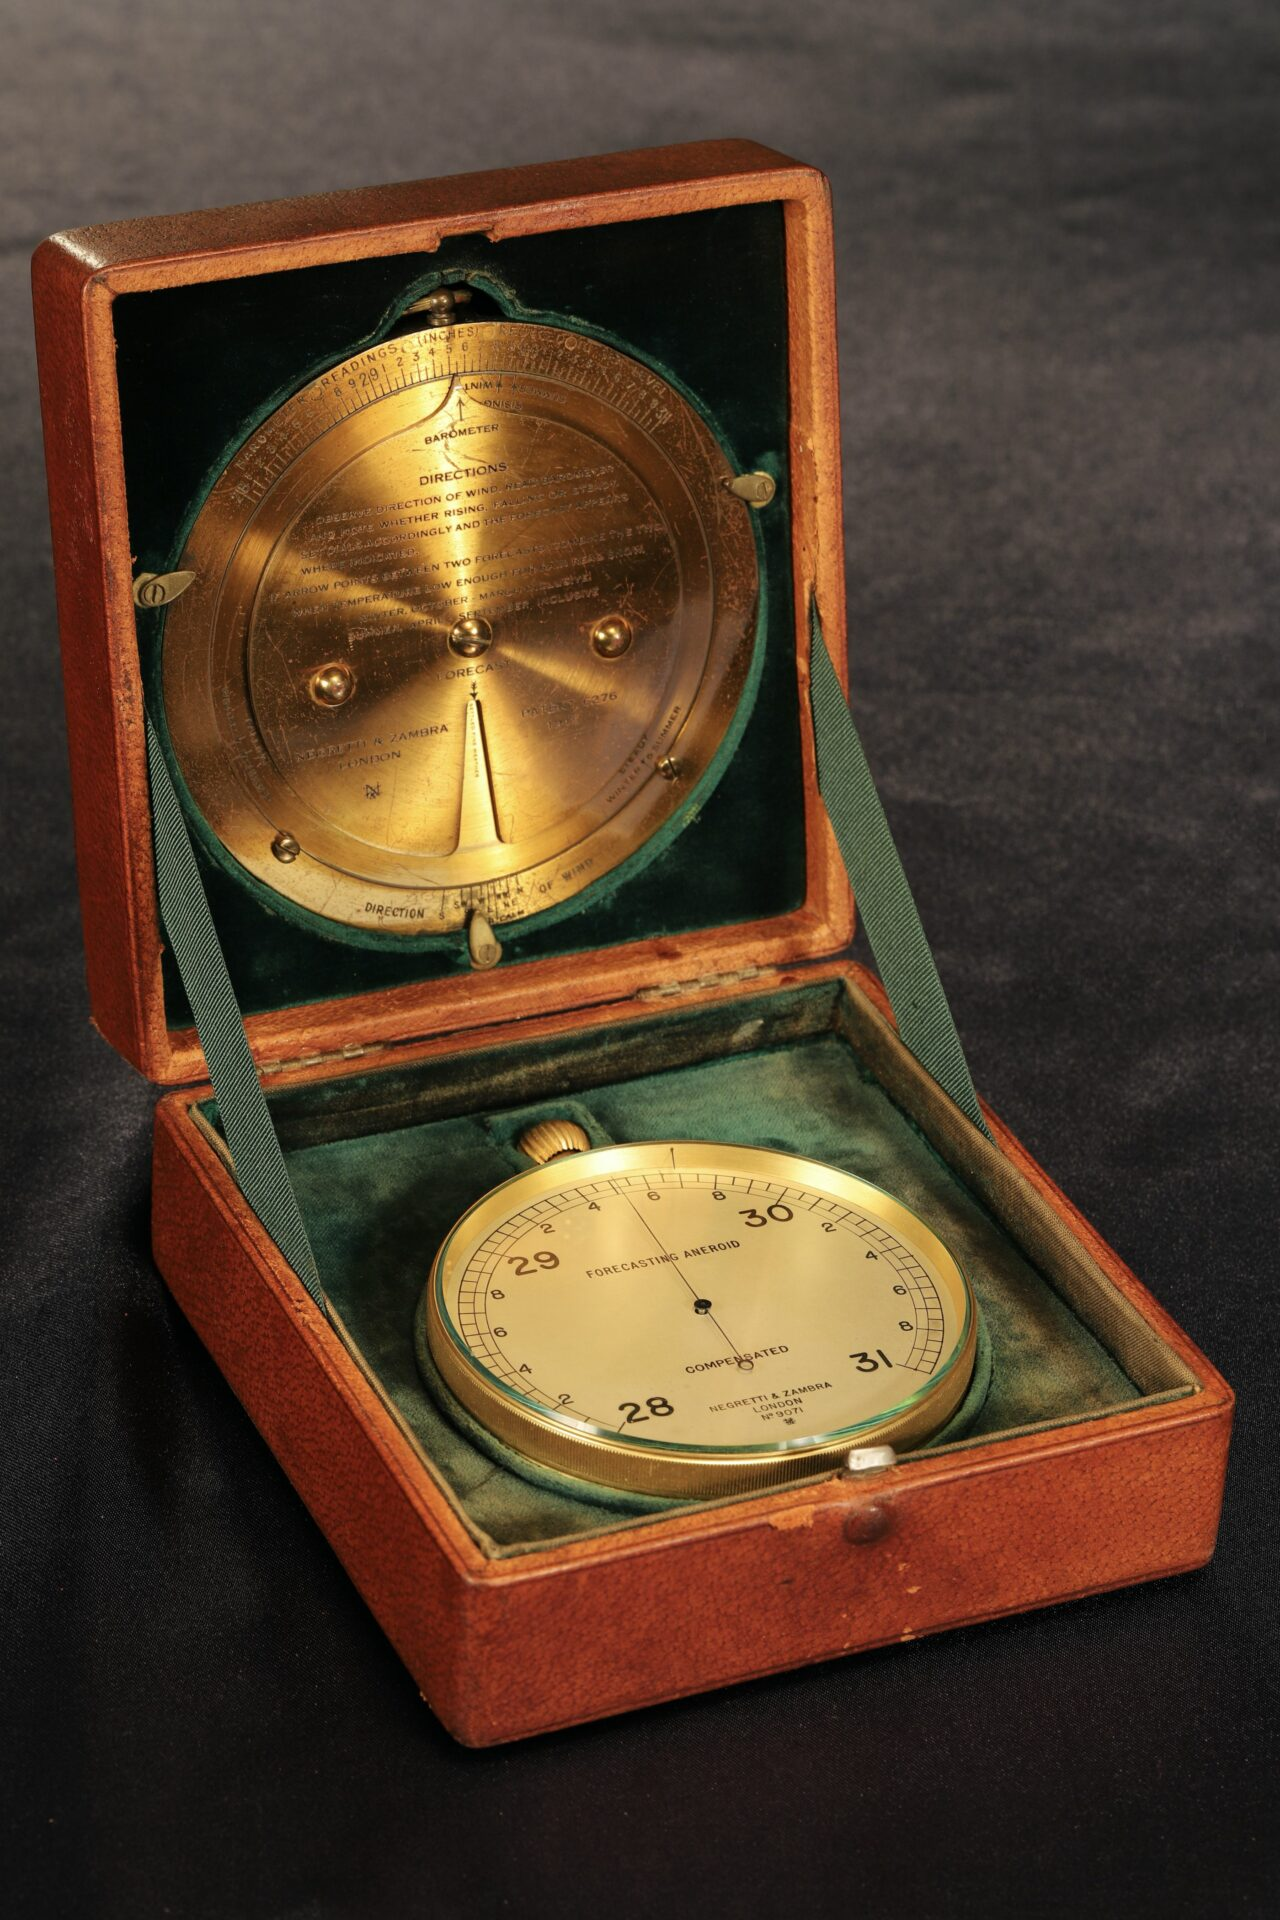 Image of Negretti & Zambra Forecasting Aneroid No 9071 c1920 in case with brass forecaster